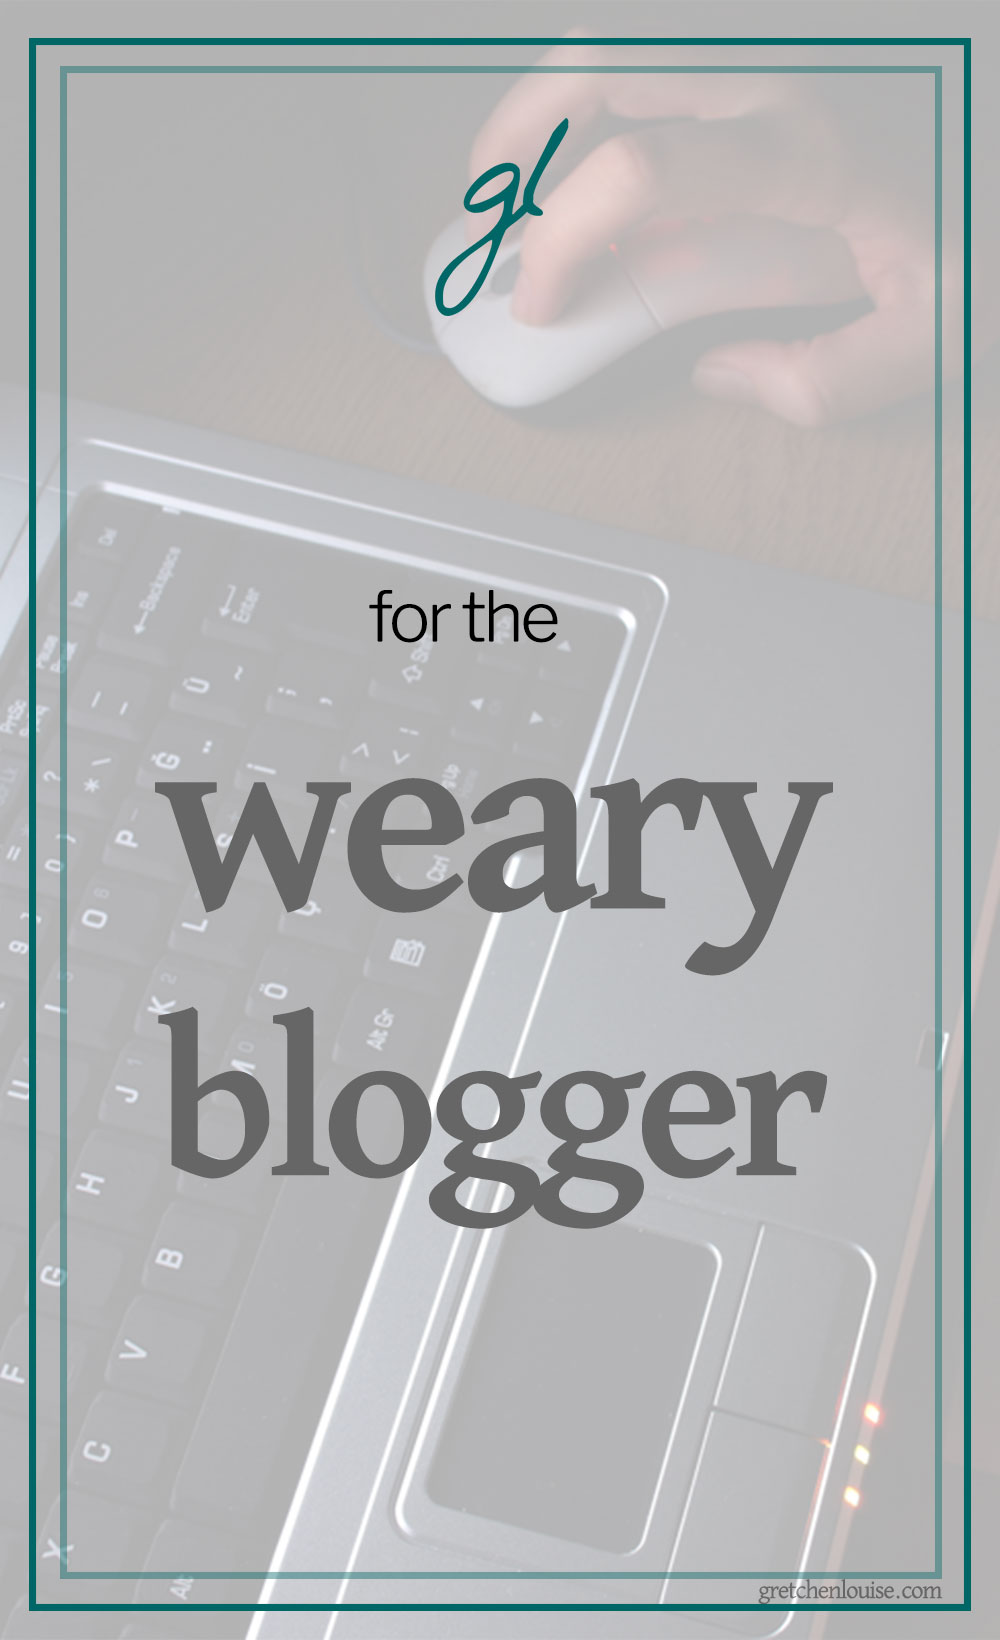 There's no other way to put it: you're tired of blogging, and you don't know what to do about it. via @GretLouise